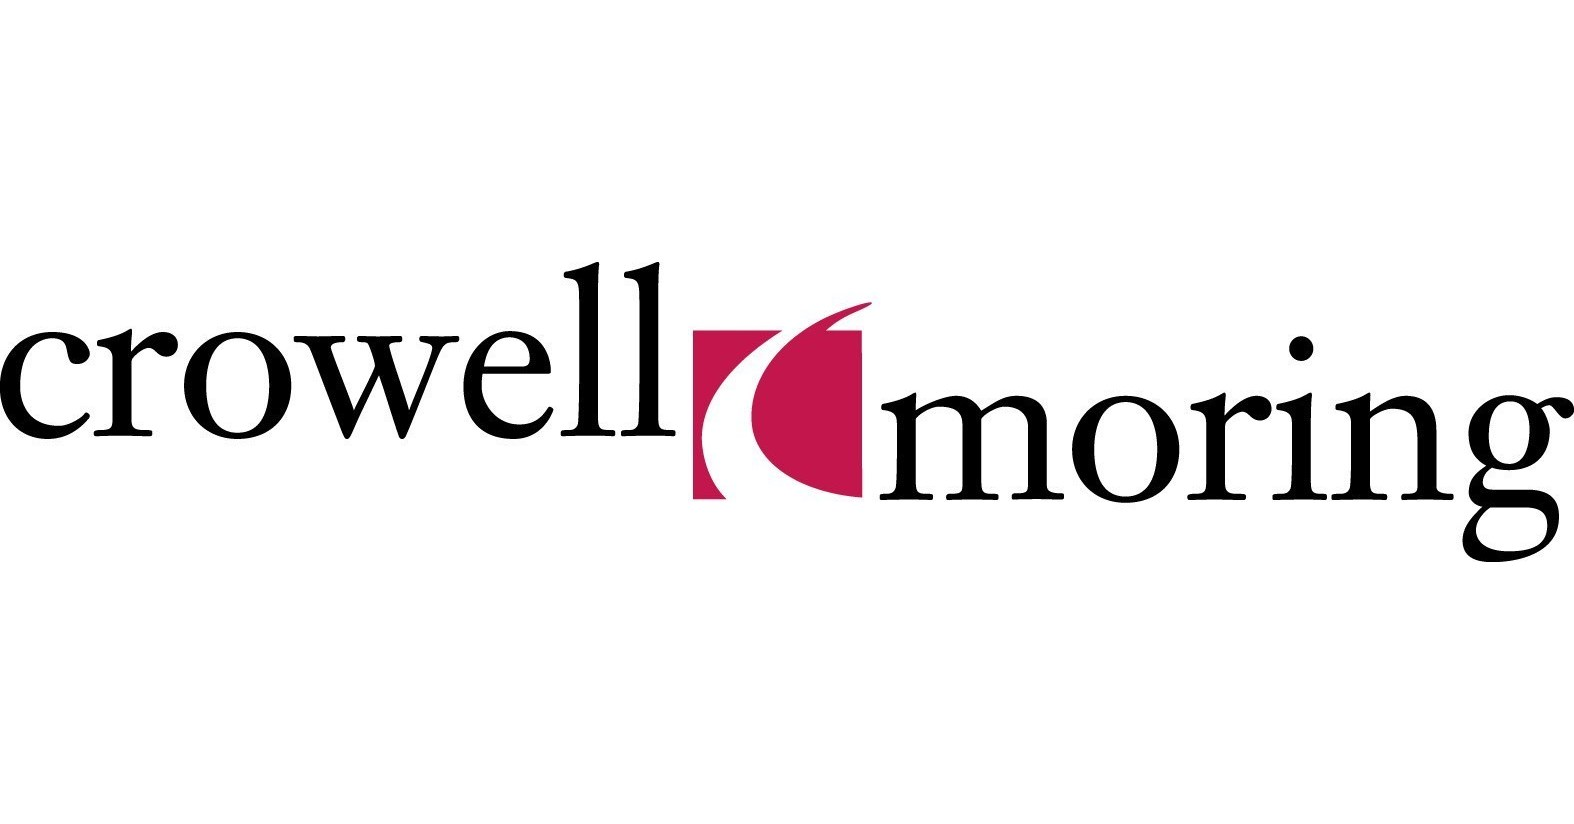 crowell and moring llp logo jpg?p=facebook.'